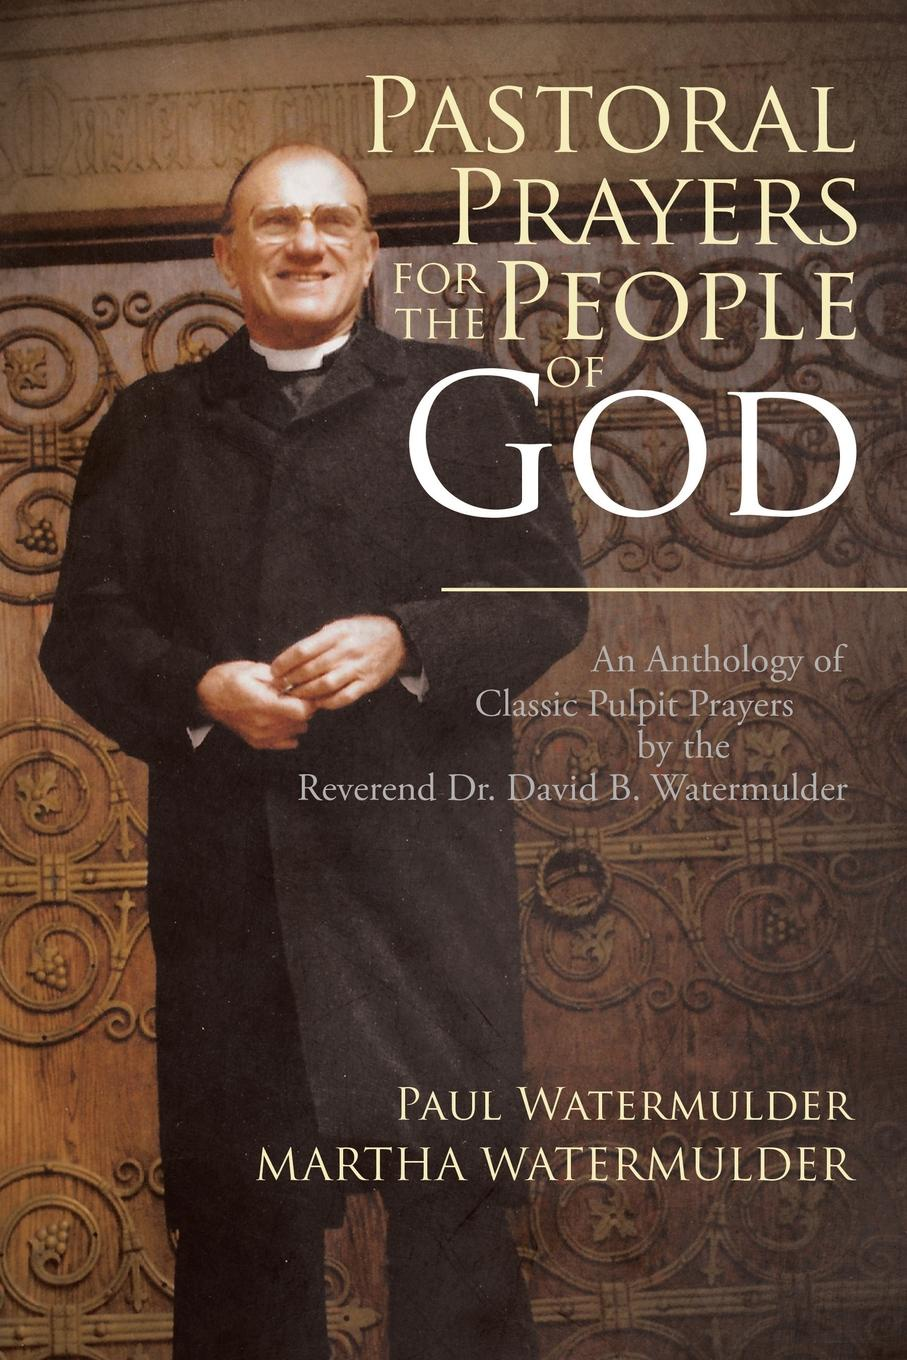 Paul Watermulder, Martha Watermulder Pastoral Prayers for the People of God. An Anthology of Classic Pulpit Prayers by the Reverend Dr. David B. Watermulder paul celiere cashel hoey john lillie the startling exploits of dr j b quies